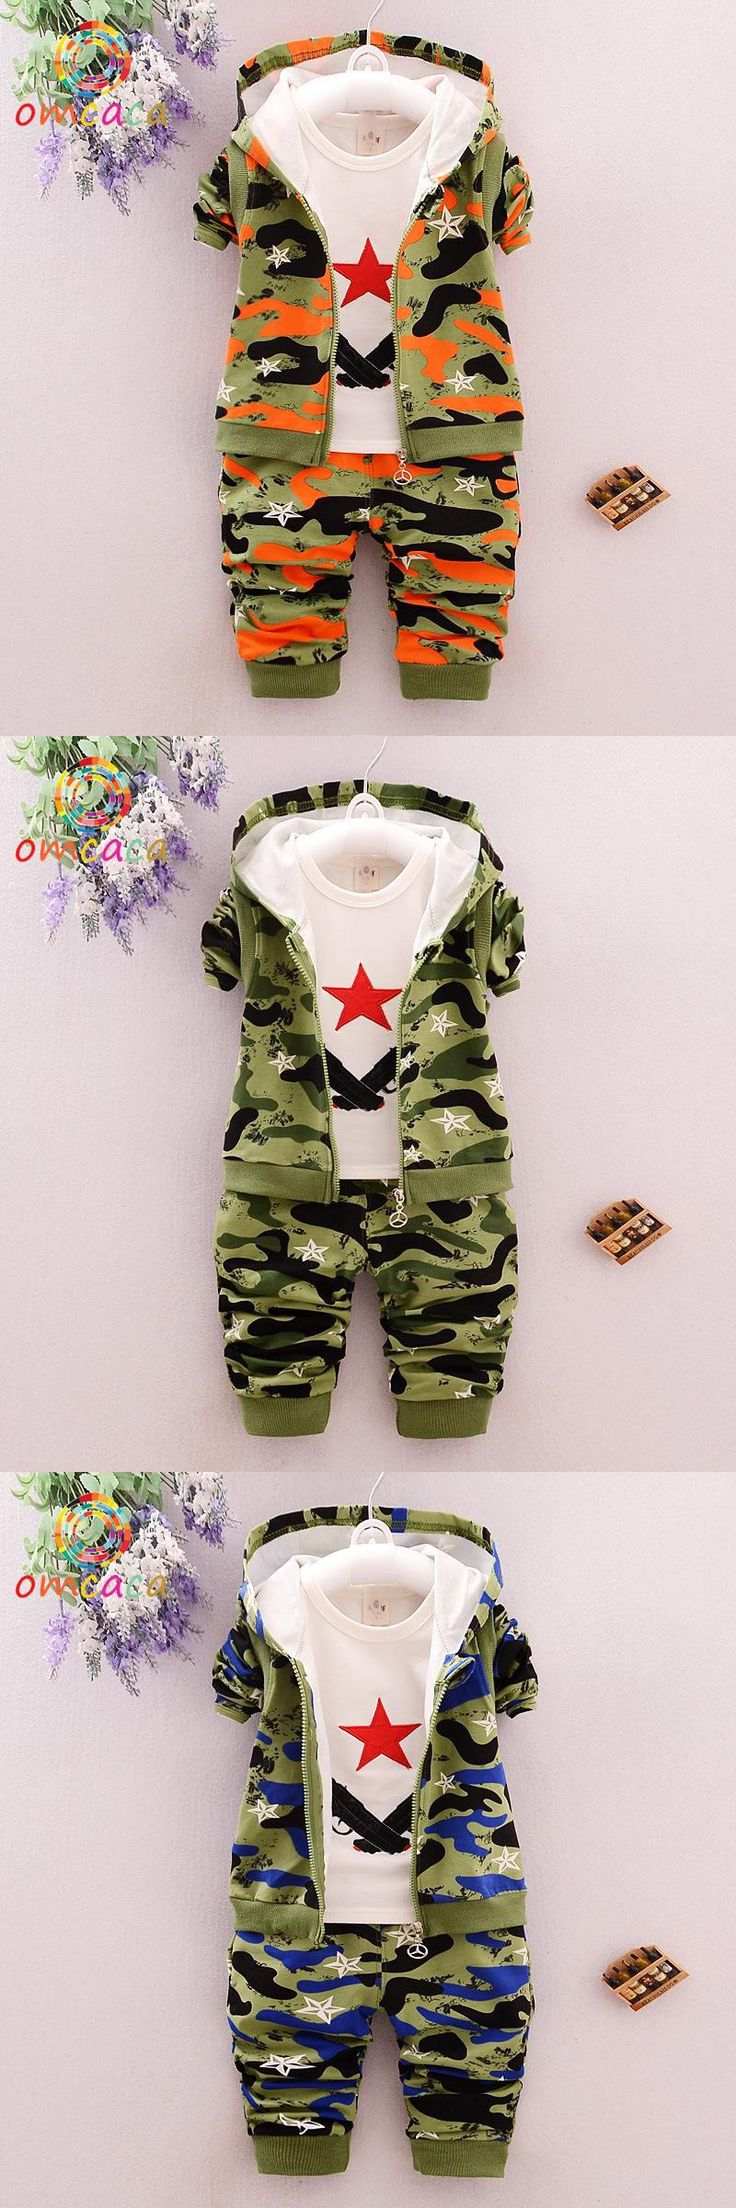 Camouflage baby clothing set hooded 3 pes set baby outfit set long sleeve full Camo baby jongen kids clothes boys OM022 $28.5